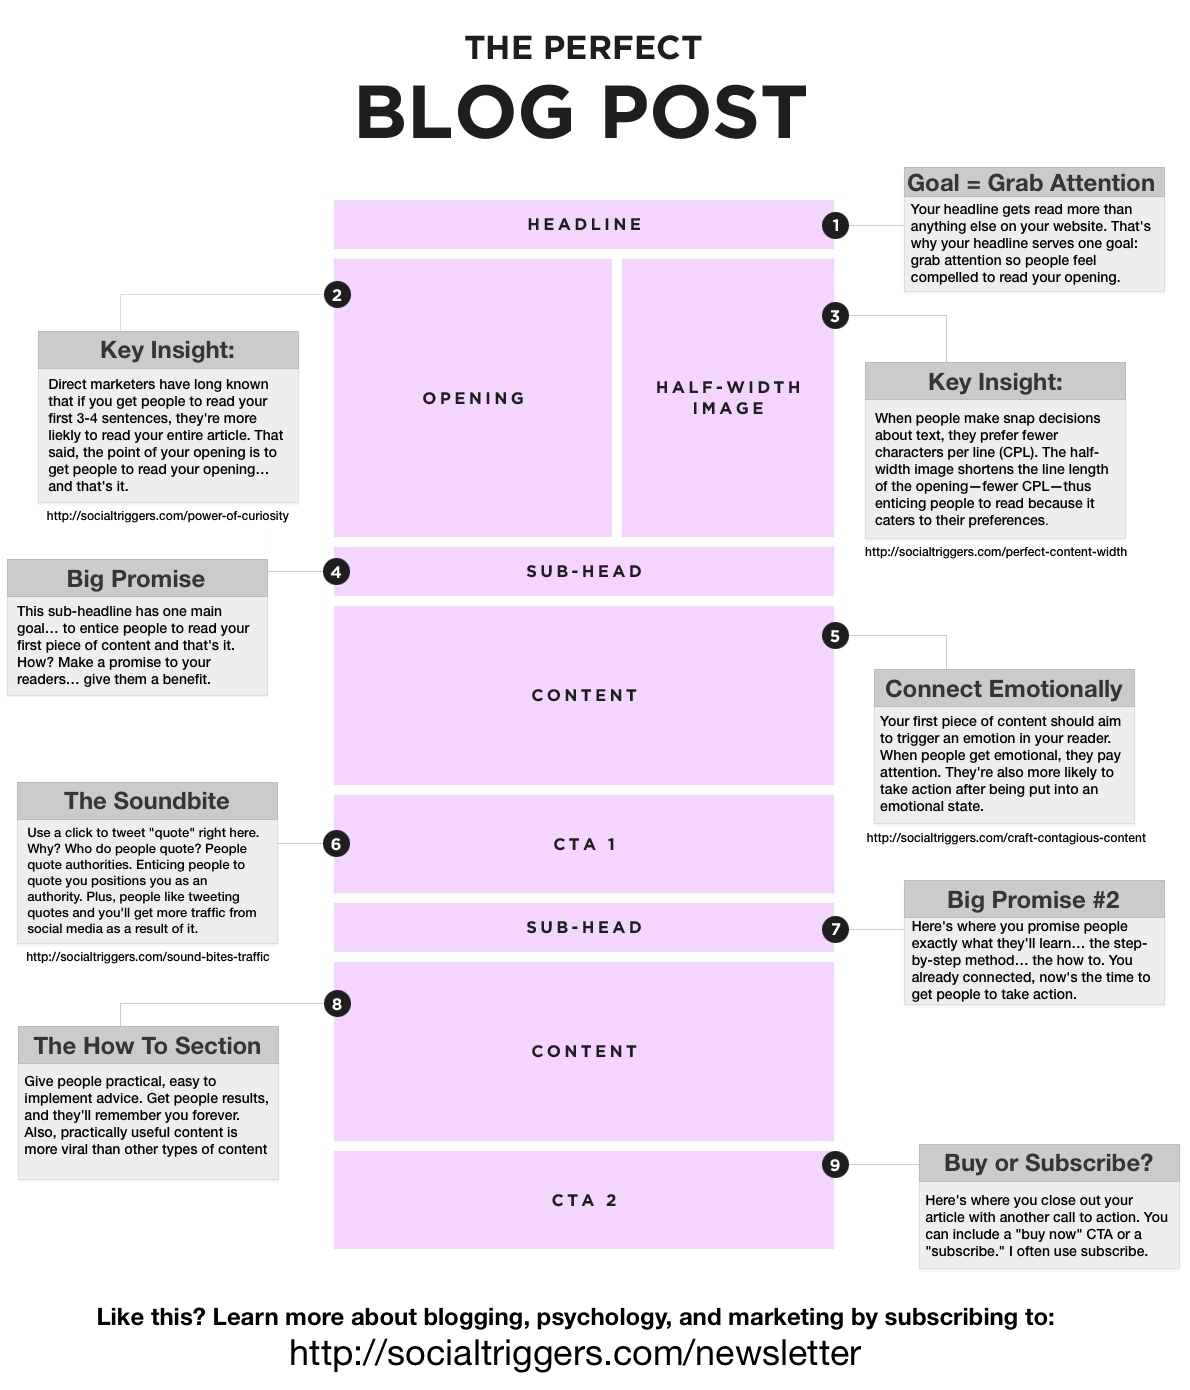 The Perfect Blog Post by SocialTriggers.com